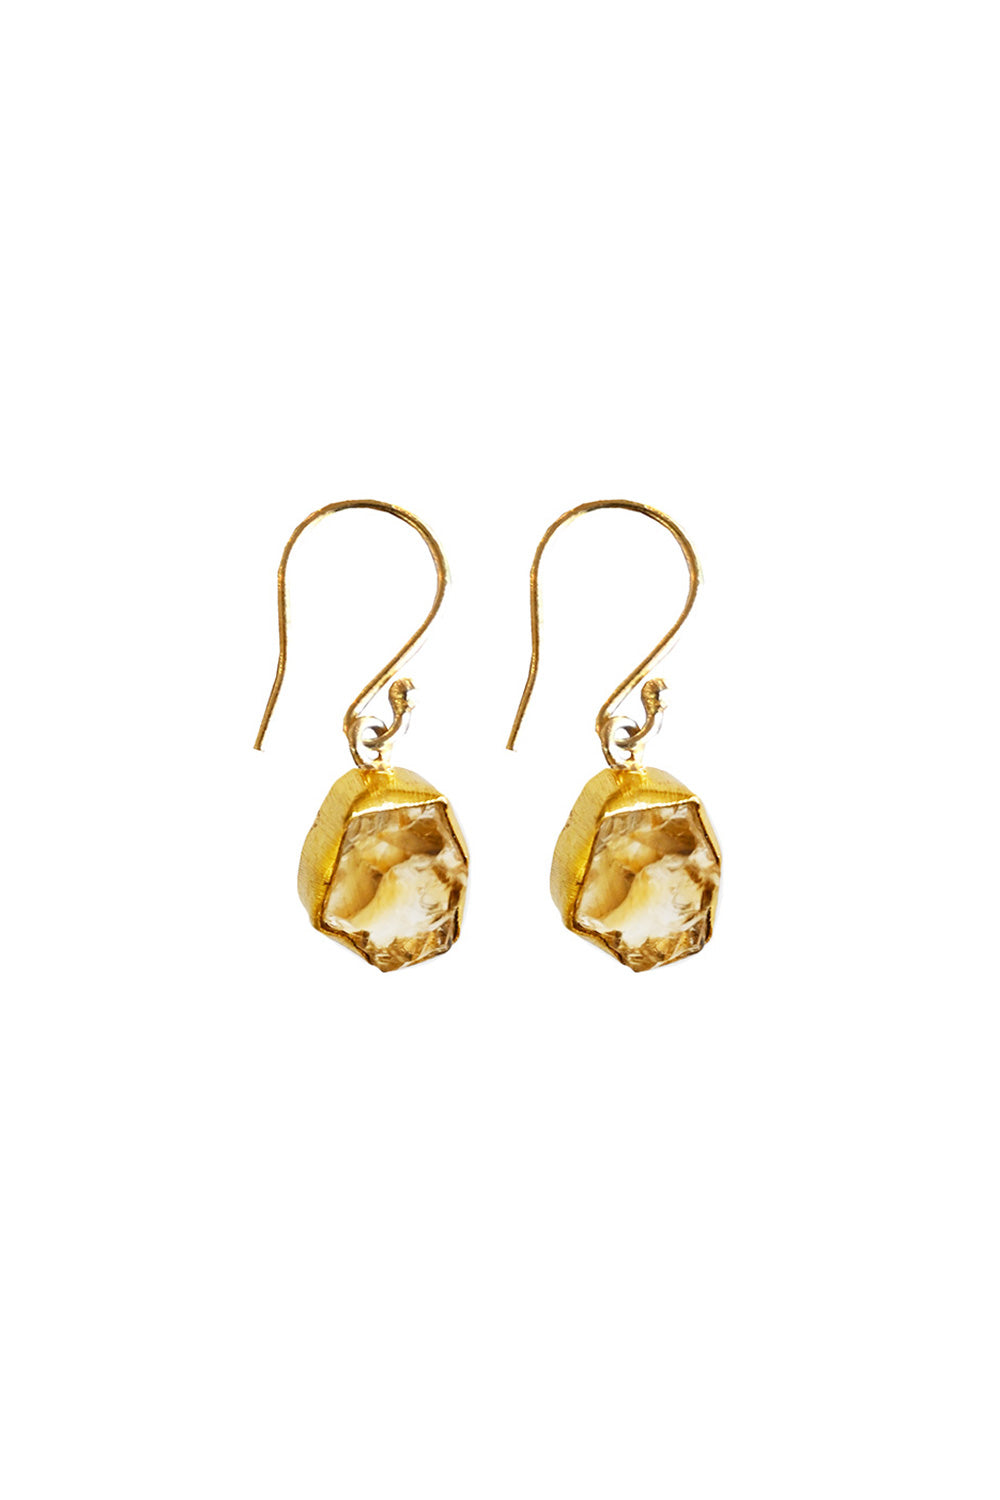 Kader Turkish Earrings - Kabana Shop